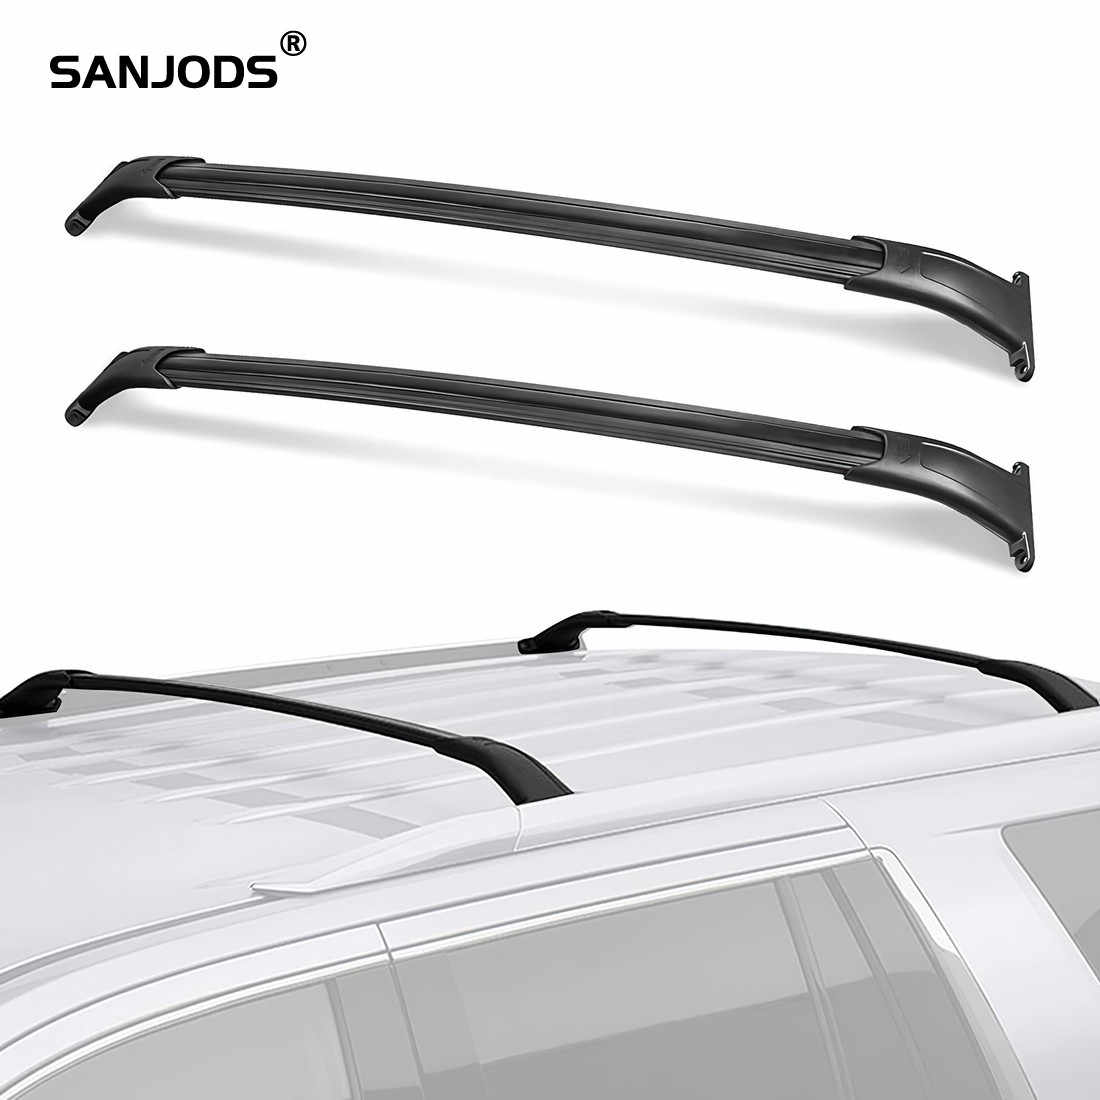 Sanjods Roof Rack For Cadillac Escalade Esv Chevy Tahoe Gmc Yukon Xl 2015 2016 2017 2018 2019 2020 Pair Roof Rack Rail Cross Bar Roof Racks Boxes Aliexpress